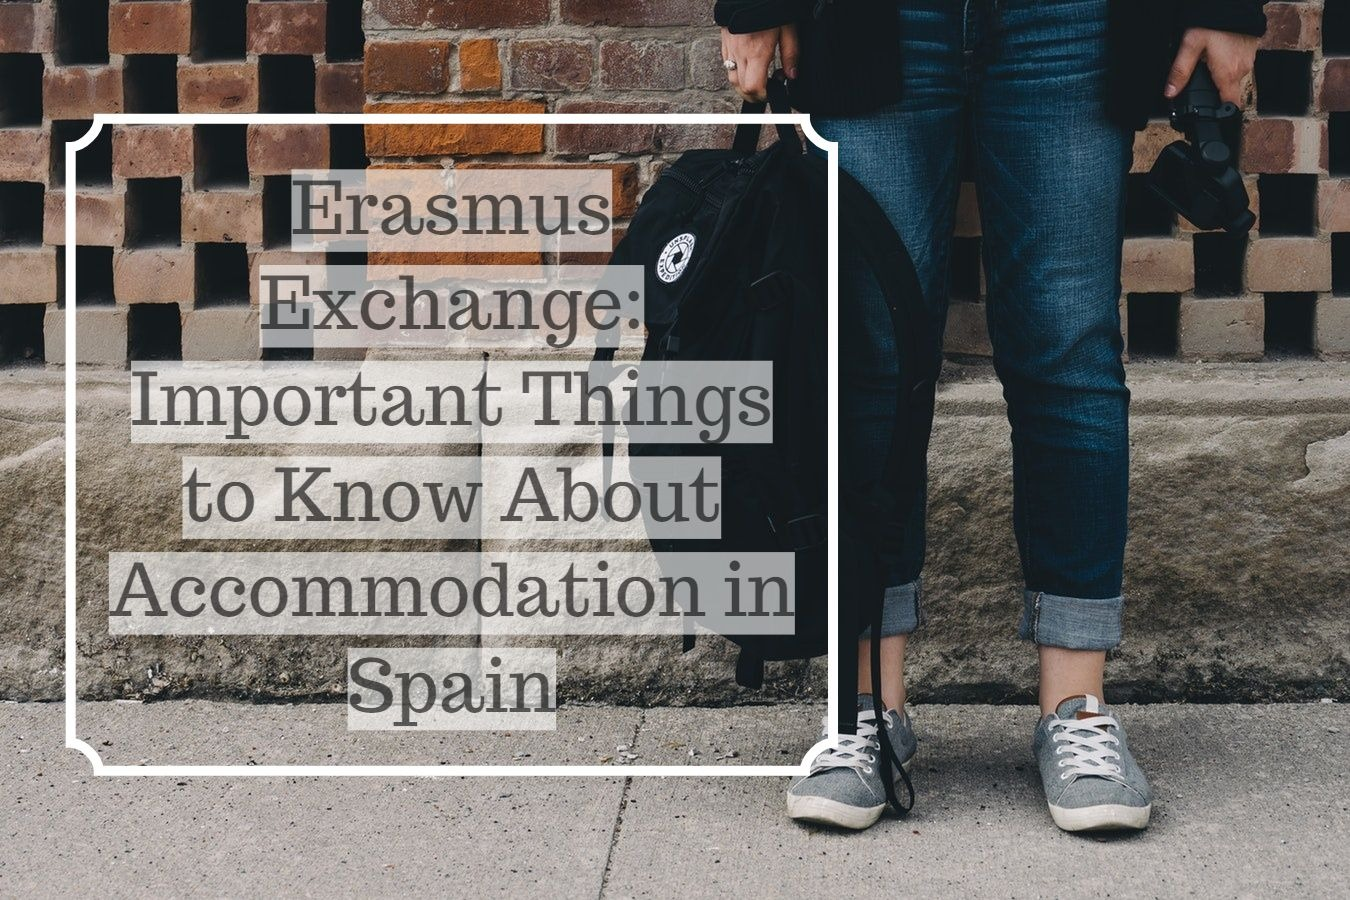 photo 1495968283540 e1df41995ba6 - Erasmus Exchange: Important Things to Know About Accommodation in Spain